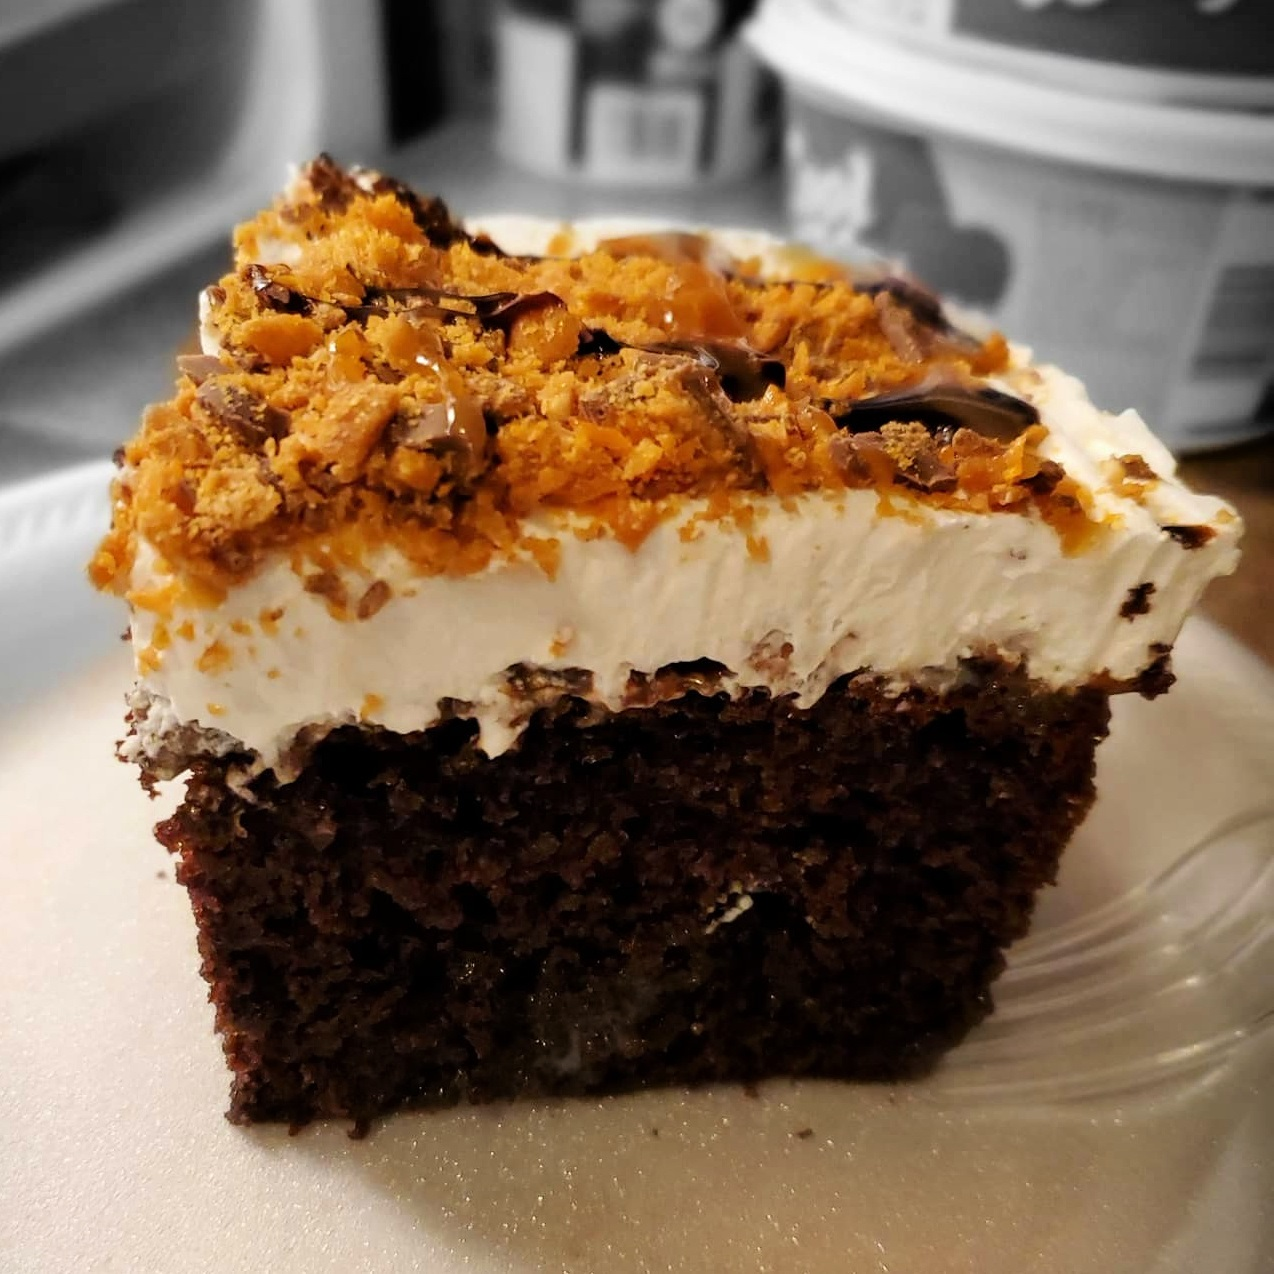 slice of chocolate butterfinger caramel cake topped with whipped cream